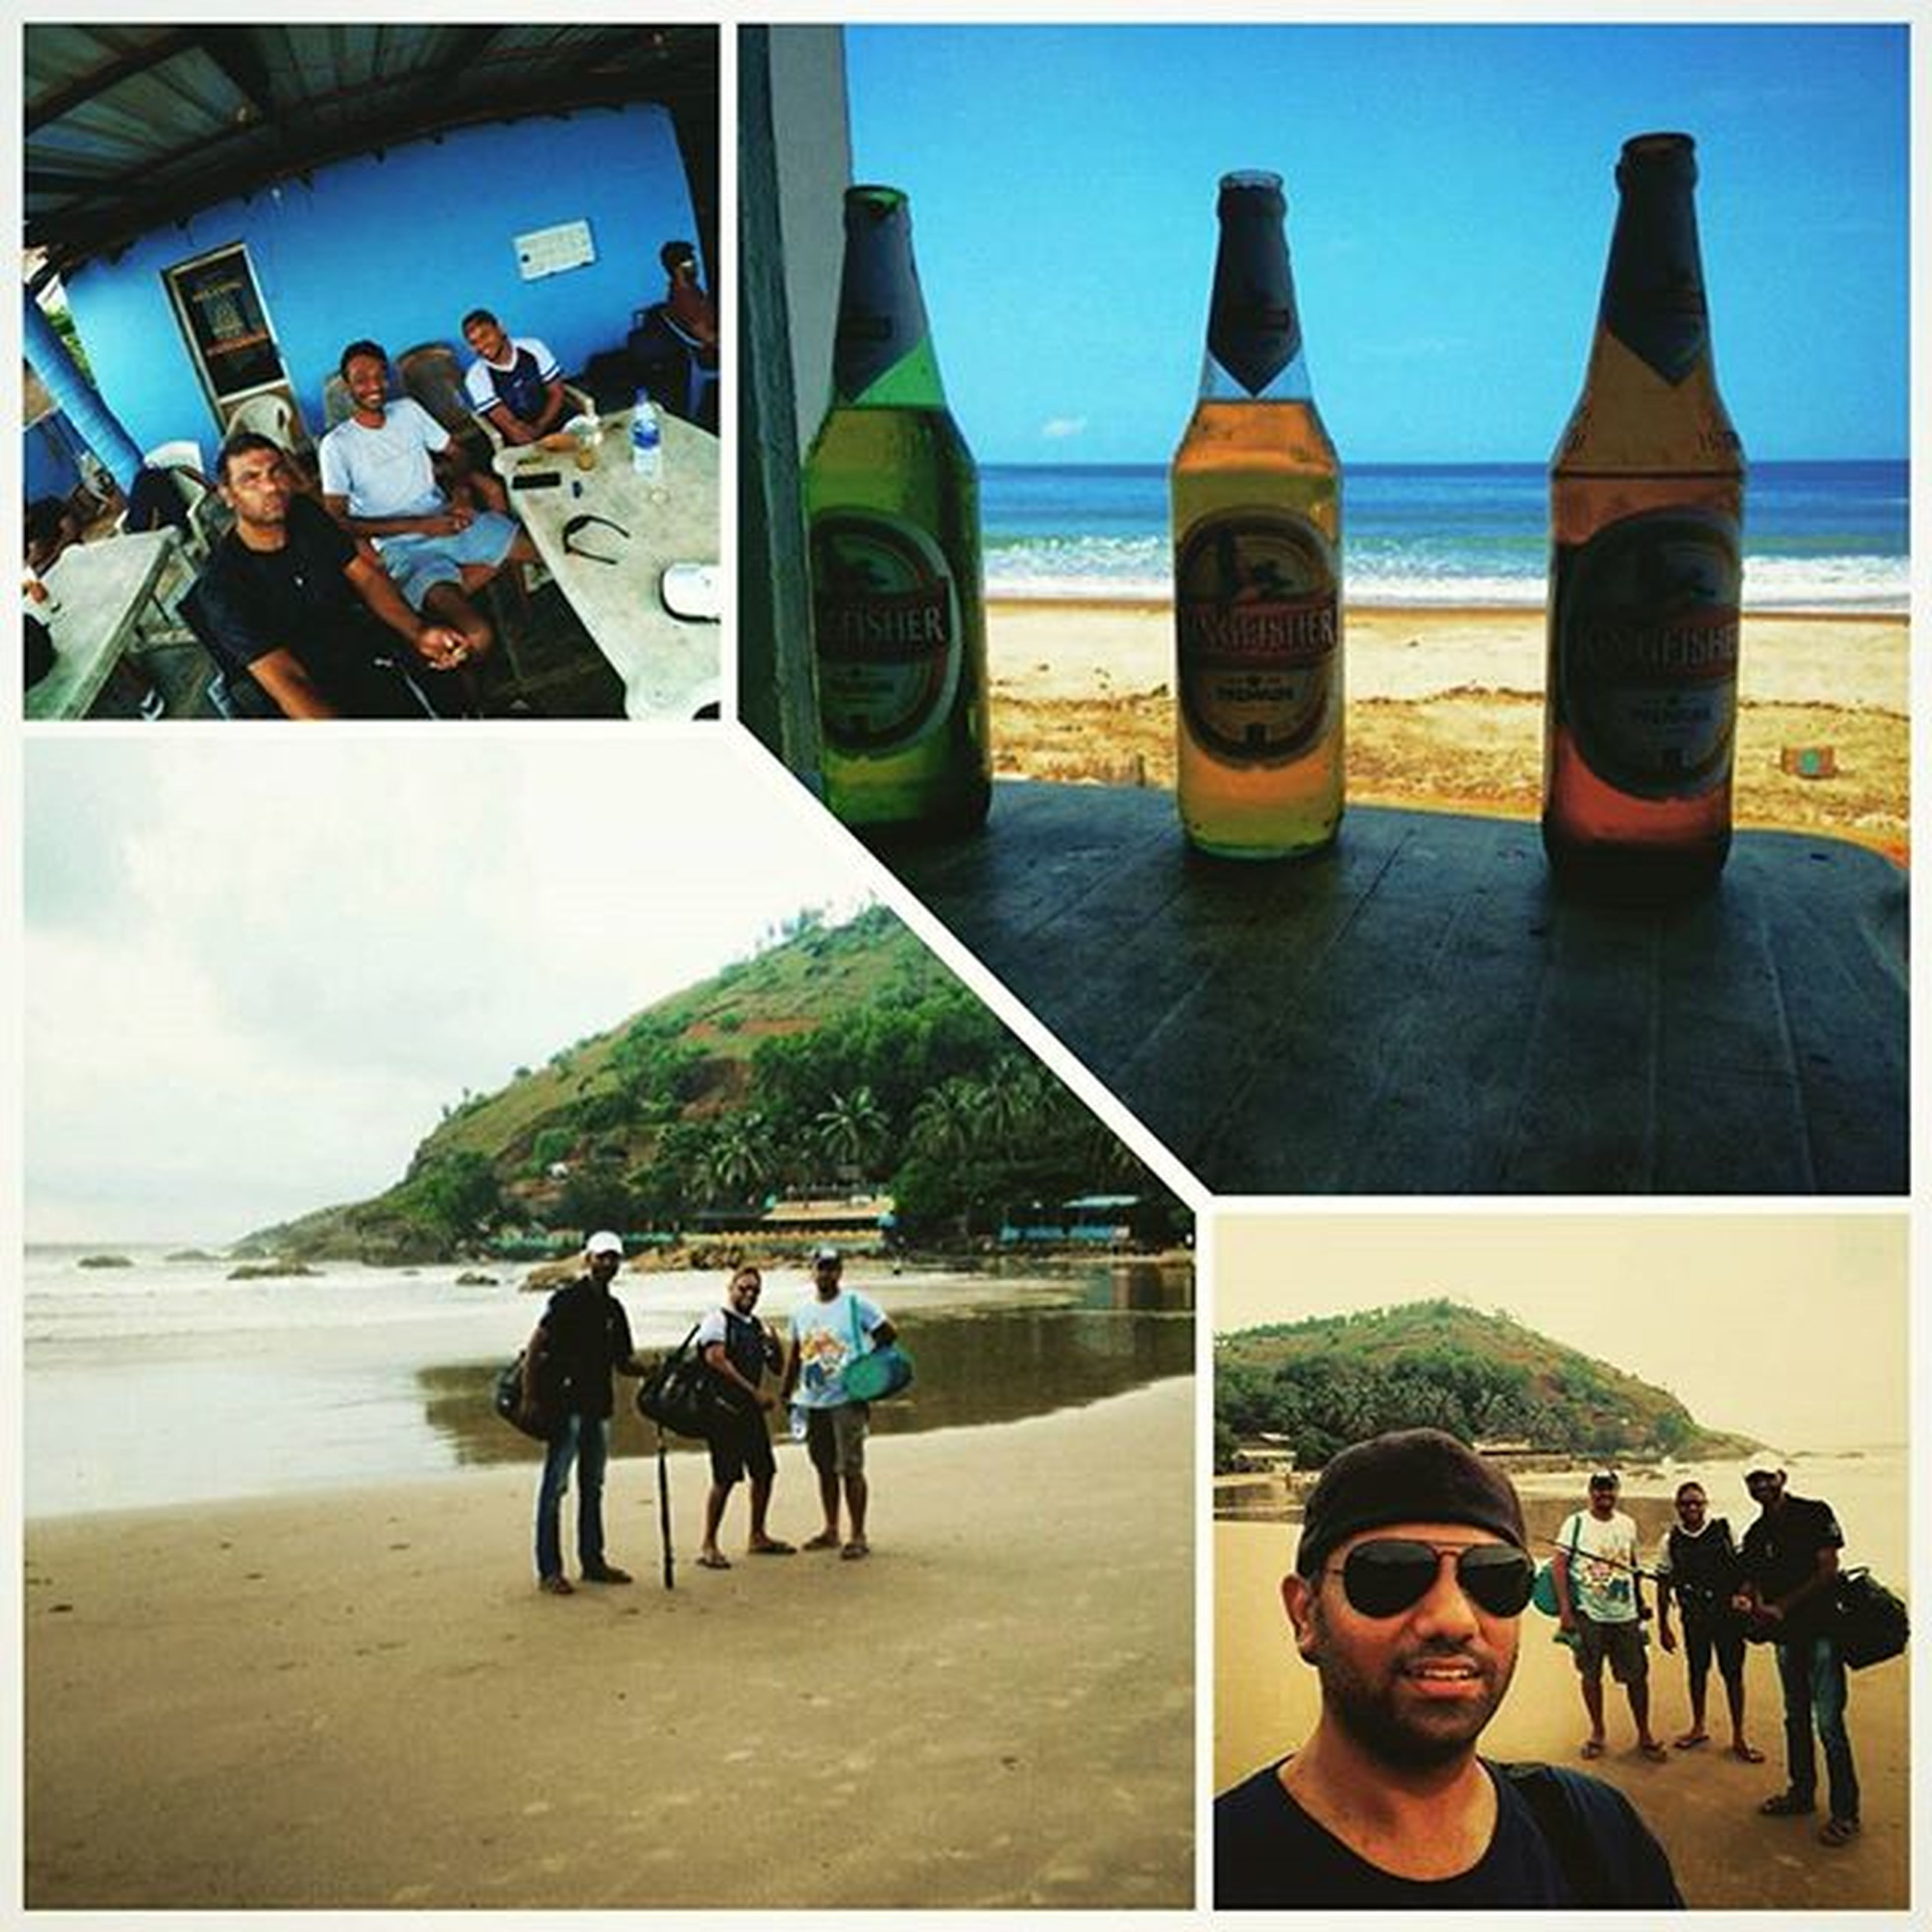 🌴Vacation🌴 is never complete without Greatfriends  and Kingfisher Beer and foraying into a new sport Fishing 🎣. Time well spent relaxing, bird watching, Fishing 🐟, Kingfisherpremiumlager 🍻, great Food😜 . Next, guess we should trying Surfing🏄 . What say @itsbloodyeddie @charan_pc ?? Pic courtesy: Deadly Soma